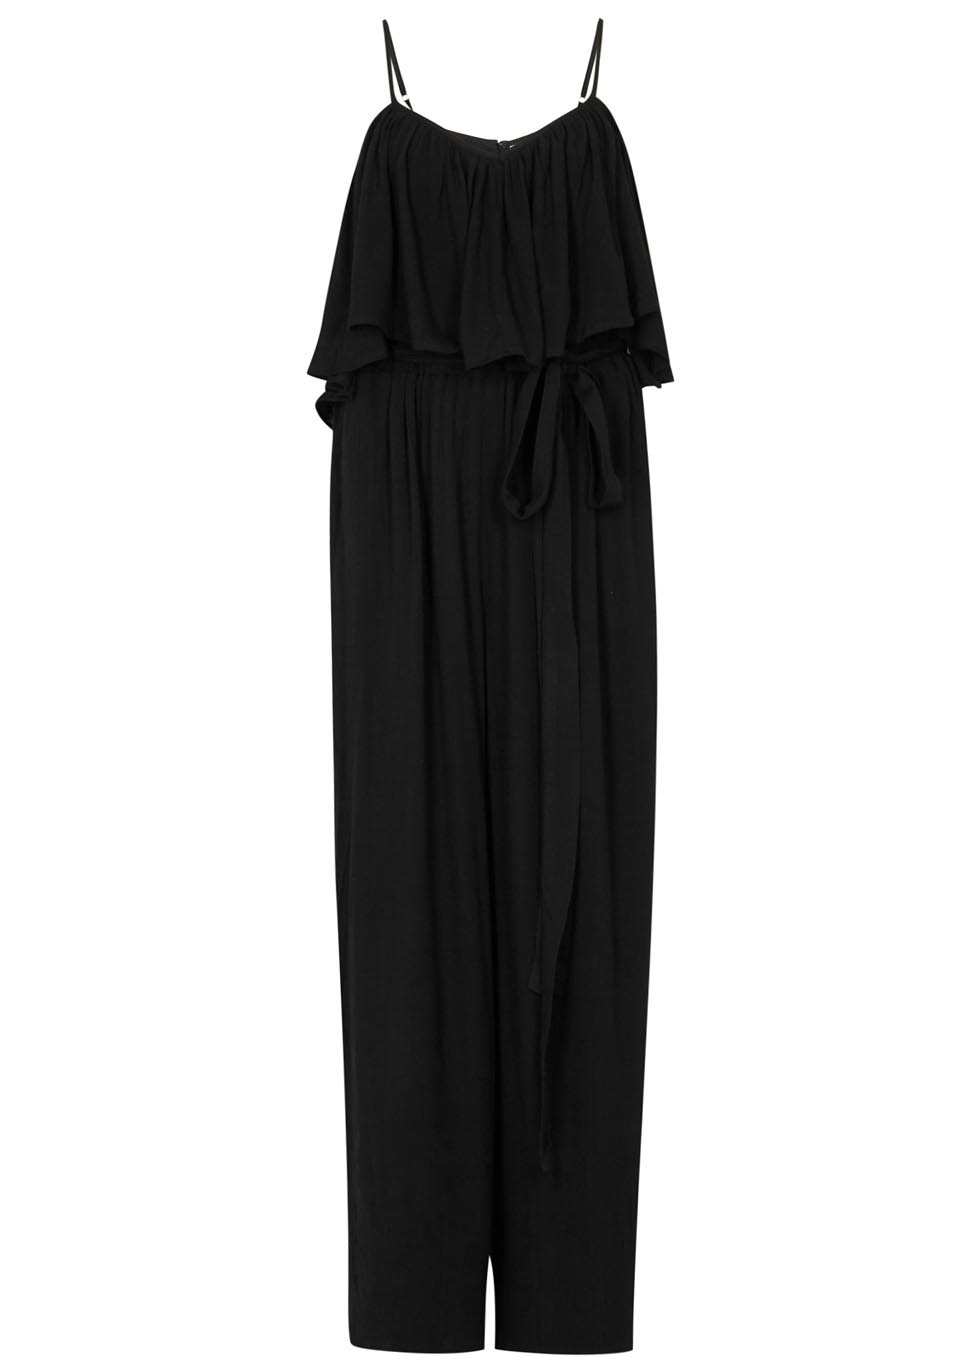 Flounce Off The Shoulder Gauze Jumpsuit - neckline: round neck; sleeve style: spaghetti straps; pattern: plain; waist detail: belted waist/tie at waist/drawstring; predominant colour: black; occasions: casual, evening; length: ankle length; fit: body skimming; fibres: viscose/rayon - 100%; sleeve length: sleeveless; style: jumpsuit; pattern type: fabric; texture group: other - light to midweight; season: s/s 2016; wardrobe: highlight